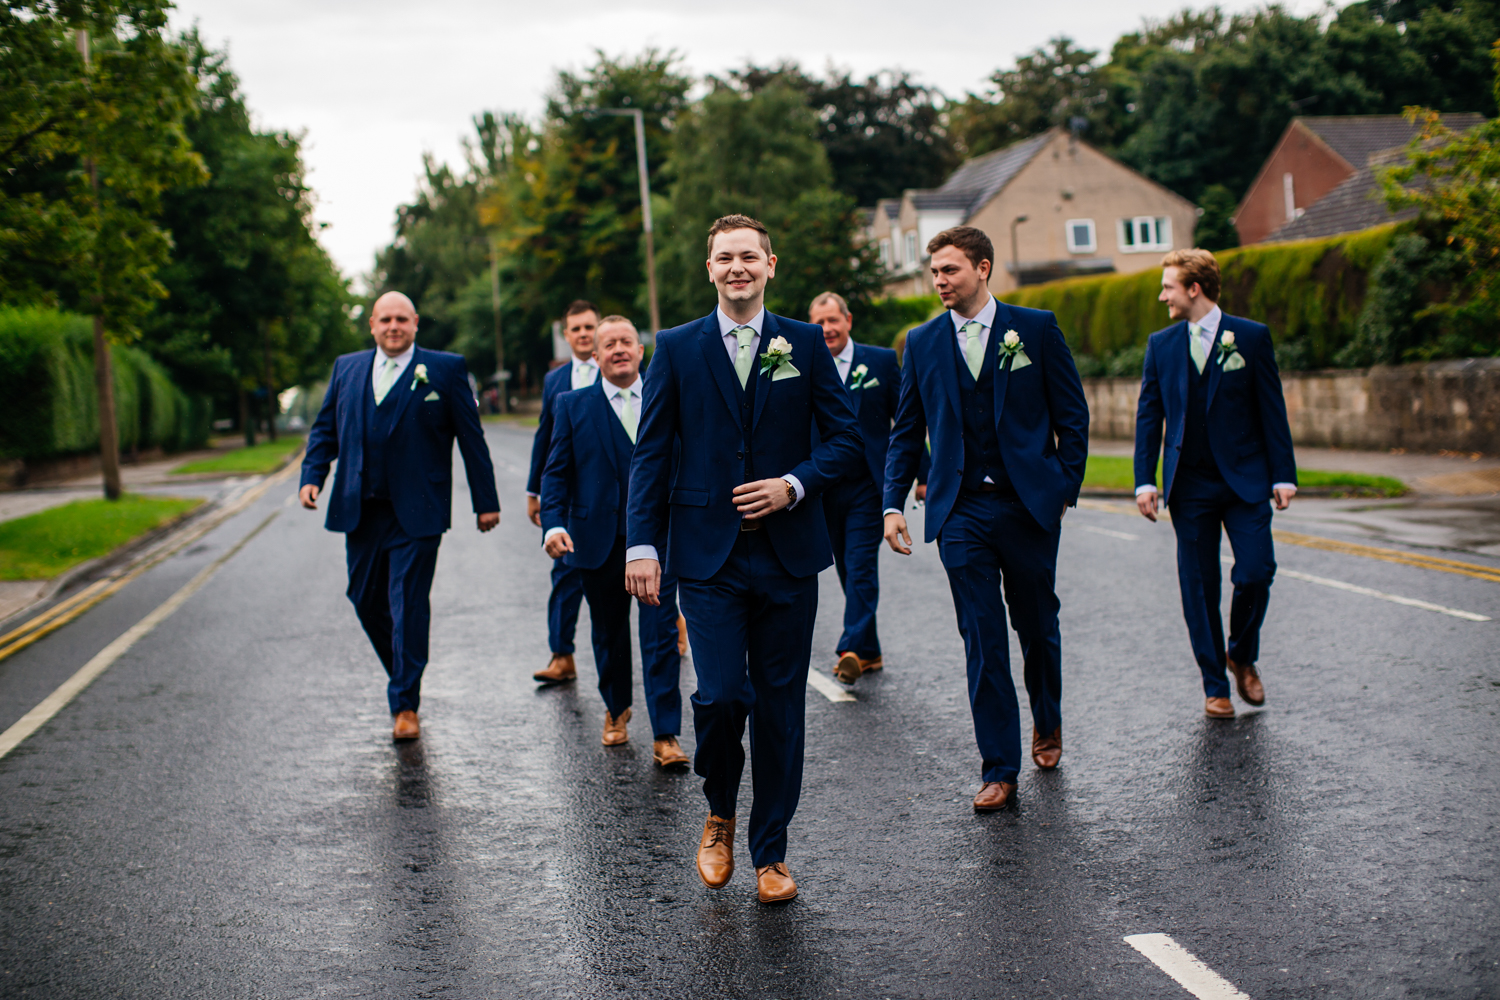 wedding photographers in sheffield7.jpg